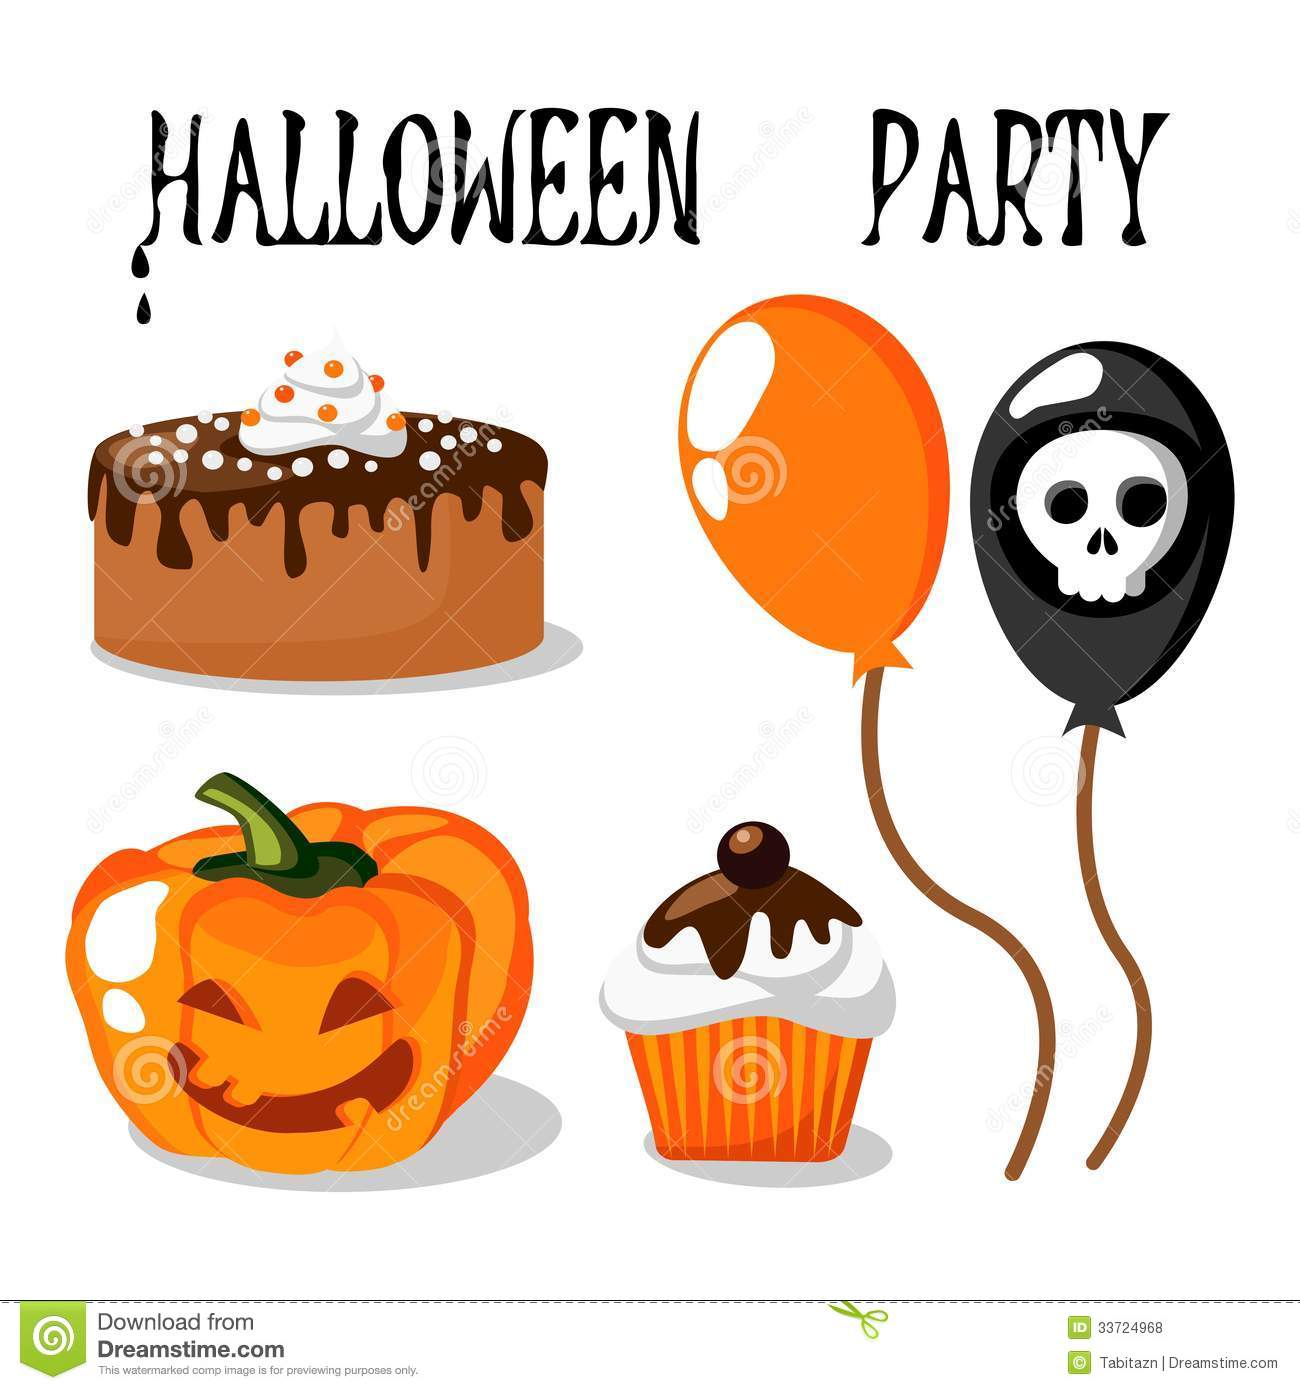 Halloween Food Clipart - Clipart Kid